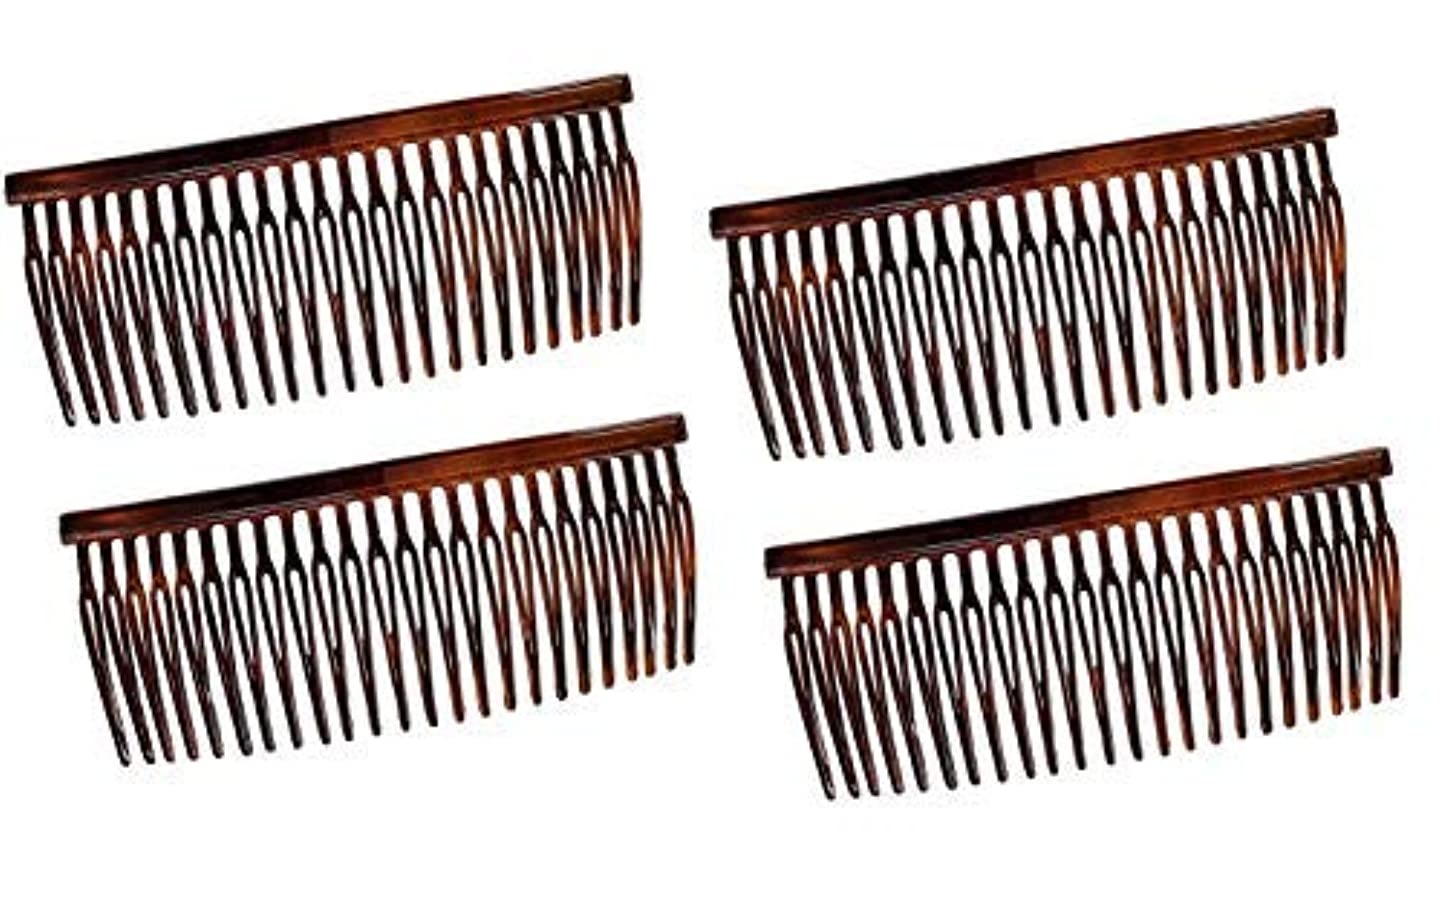 赤謝罪悪行Parcelona French Large 3.5 Inches Glossy Tortoise Shell Celluloid Good Grip Updo Hair Side Combs 4 pcs [並行輸入品]